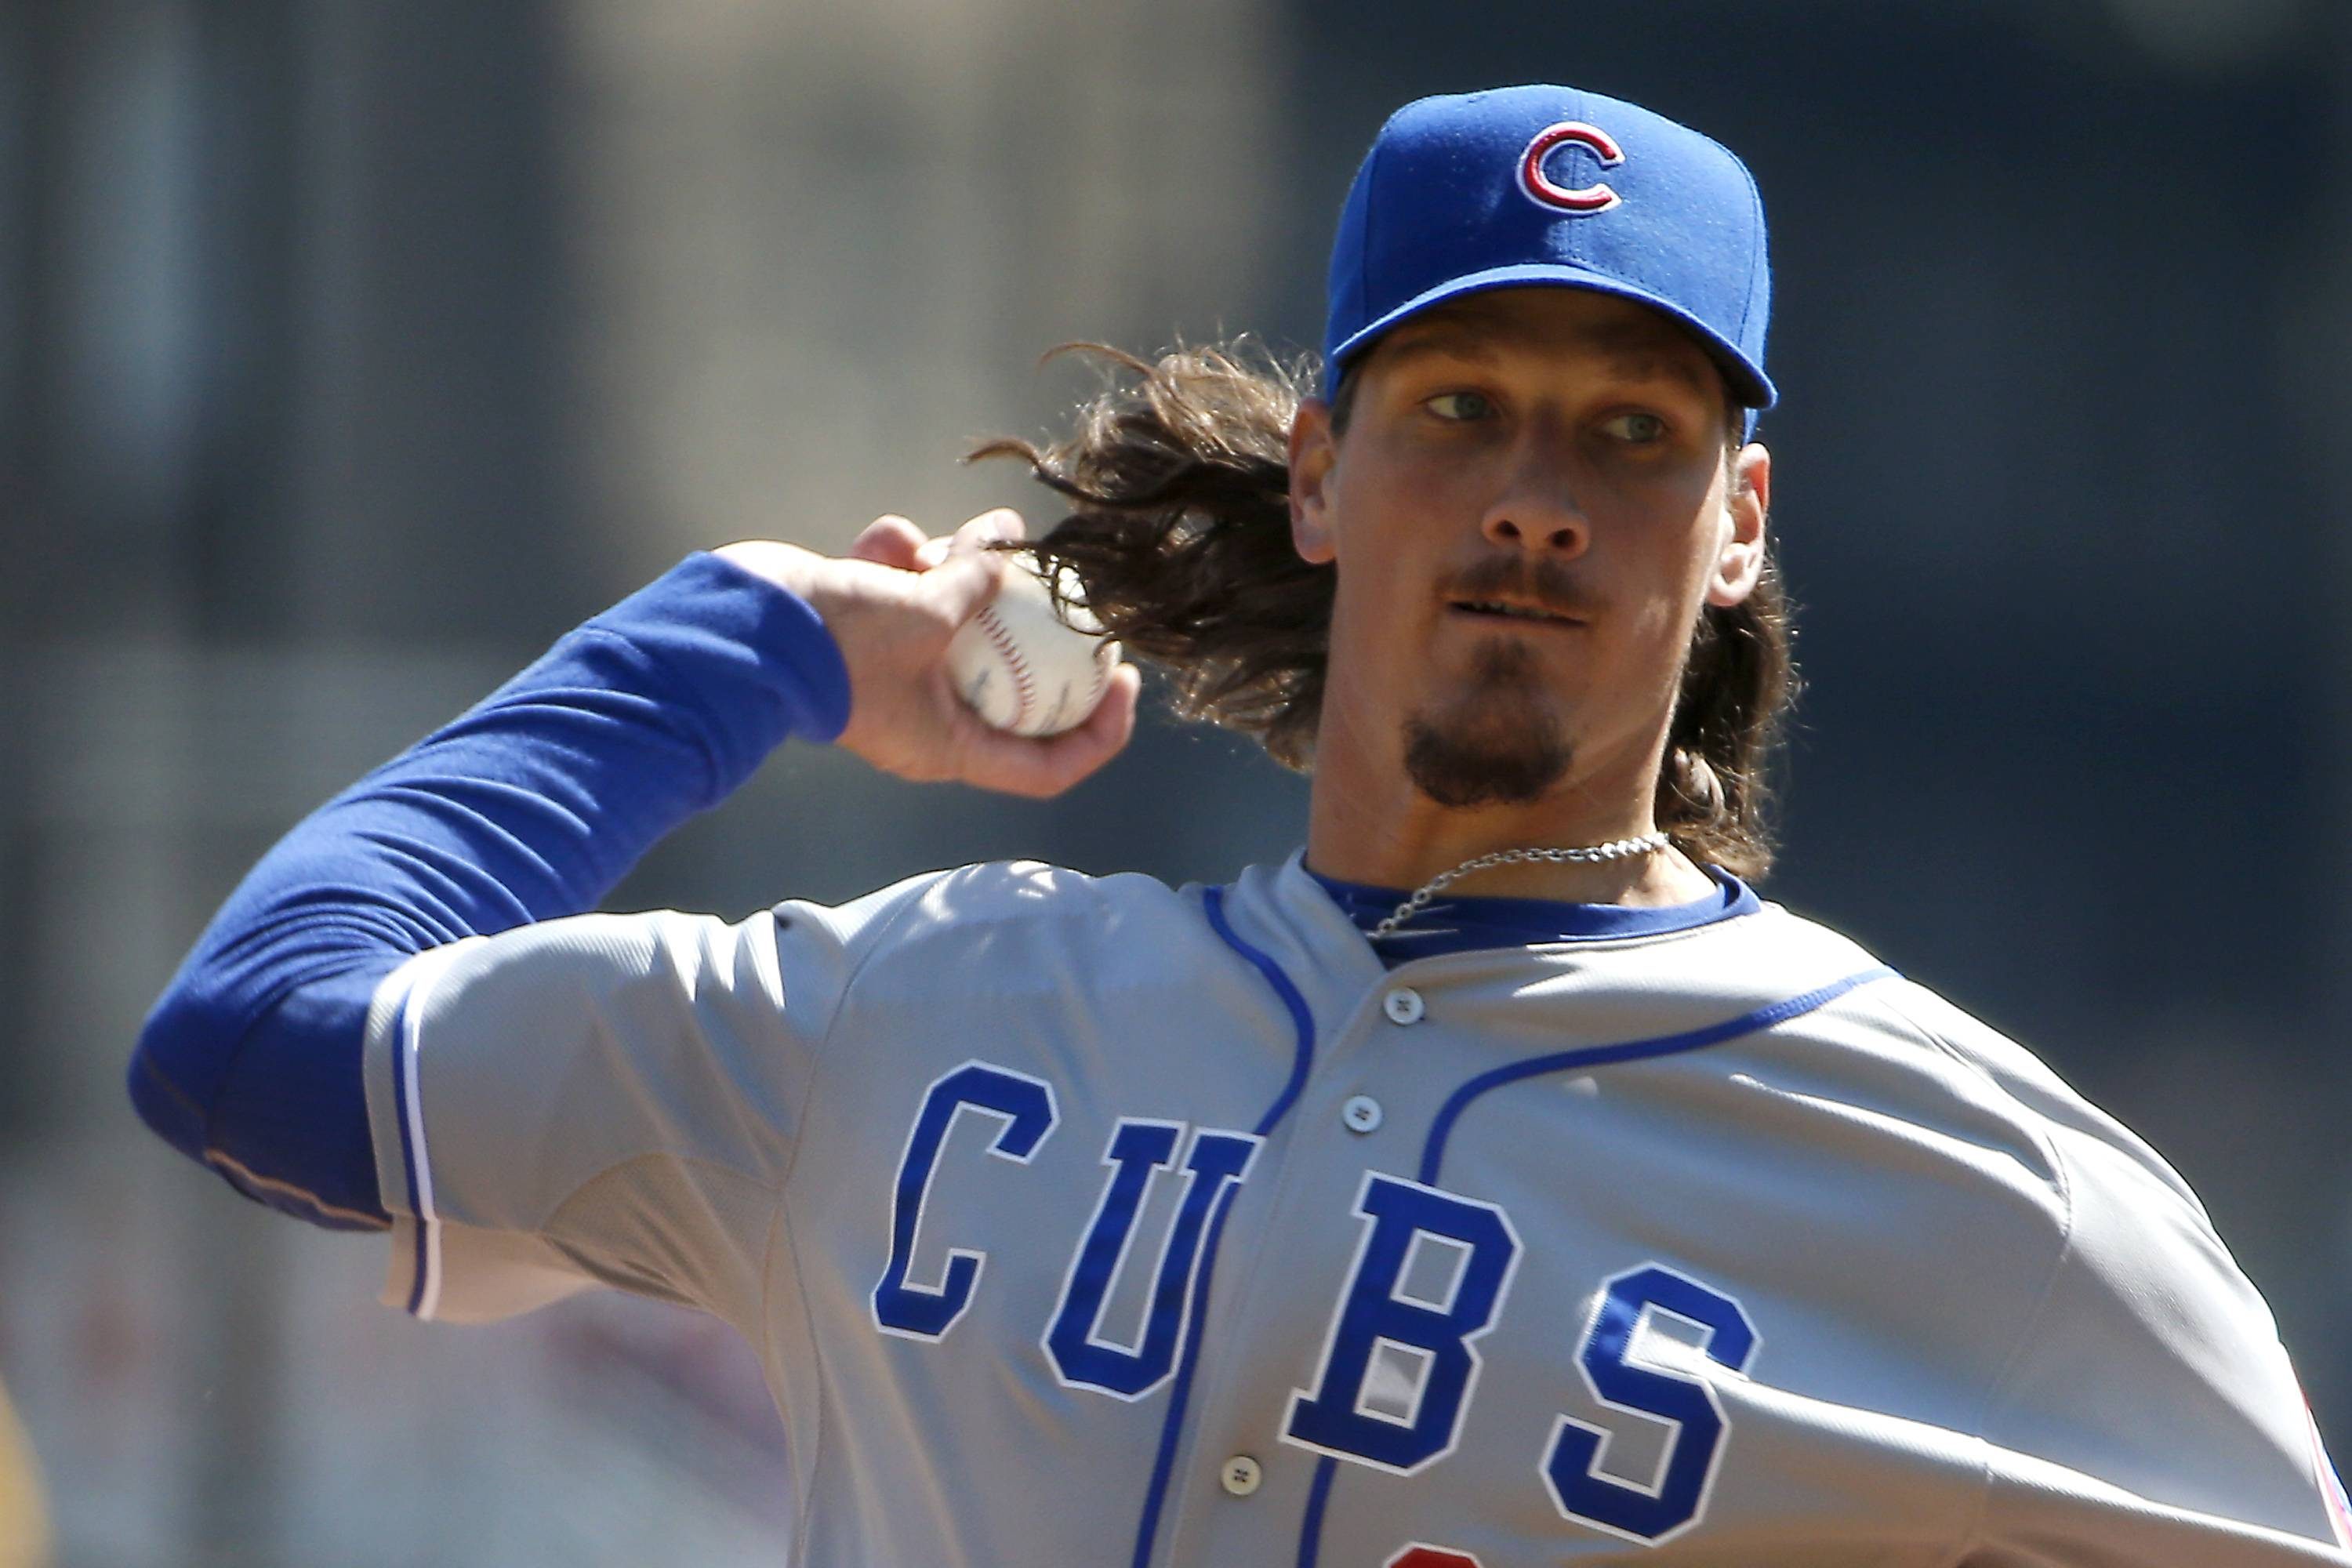 Chicago Cubs starting pitcher Jeff Samardzija throws in the second inning against the Pittsburgh Pirates.